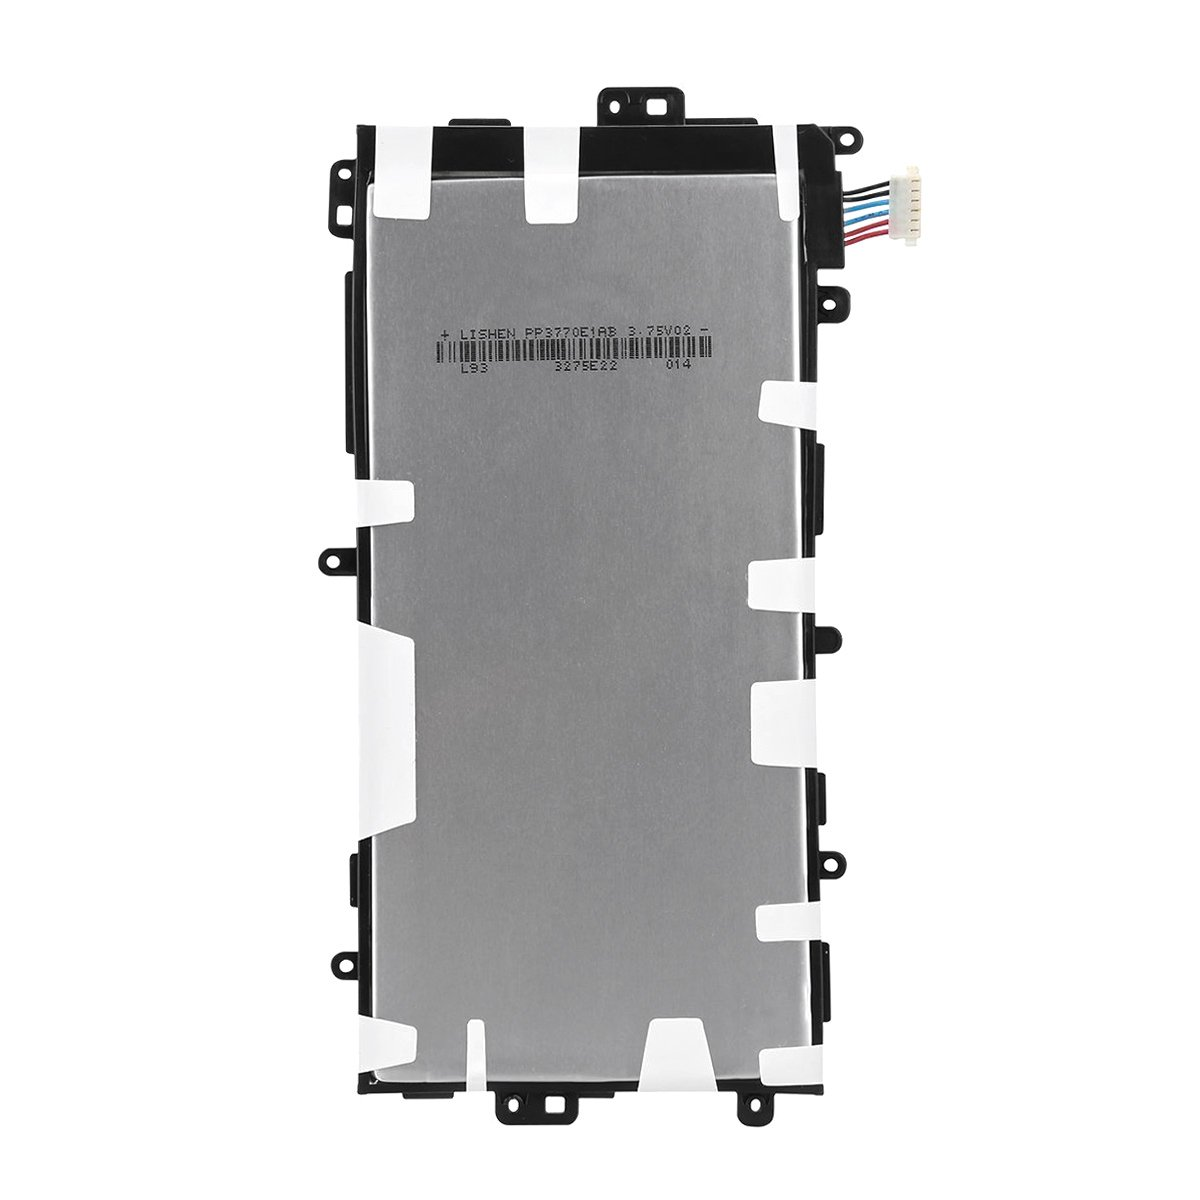 ANTIEE Compatible New SP3770E1H Battery Replacement Samsung Galaxy Note 8.0 N5110 N5100 GT-N5110 N5120 SGH-i467 Tablet 3.75v 4600mAh 141332454061 by ANTIEE (Image #3)